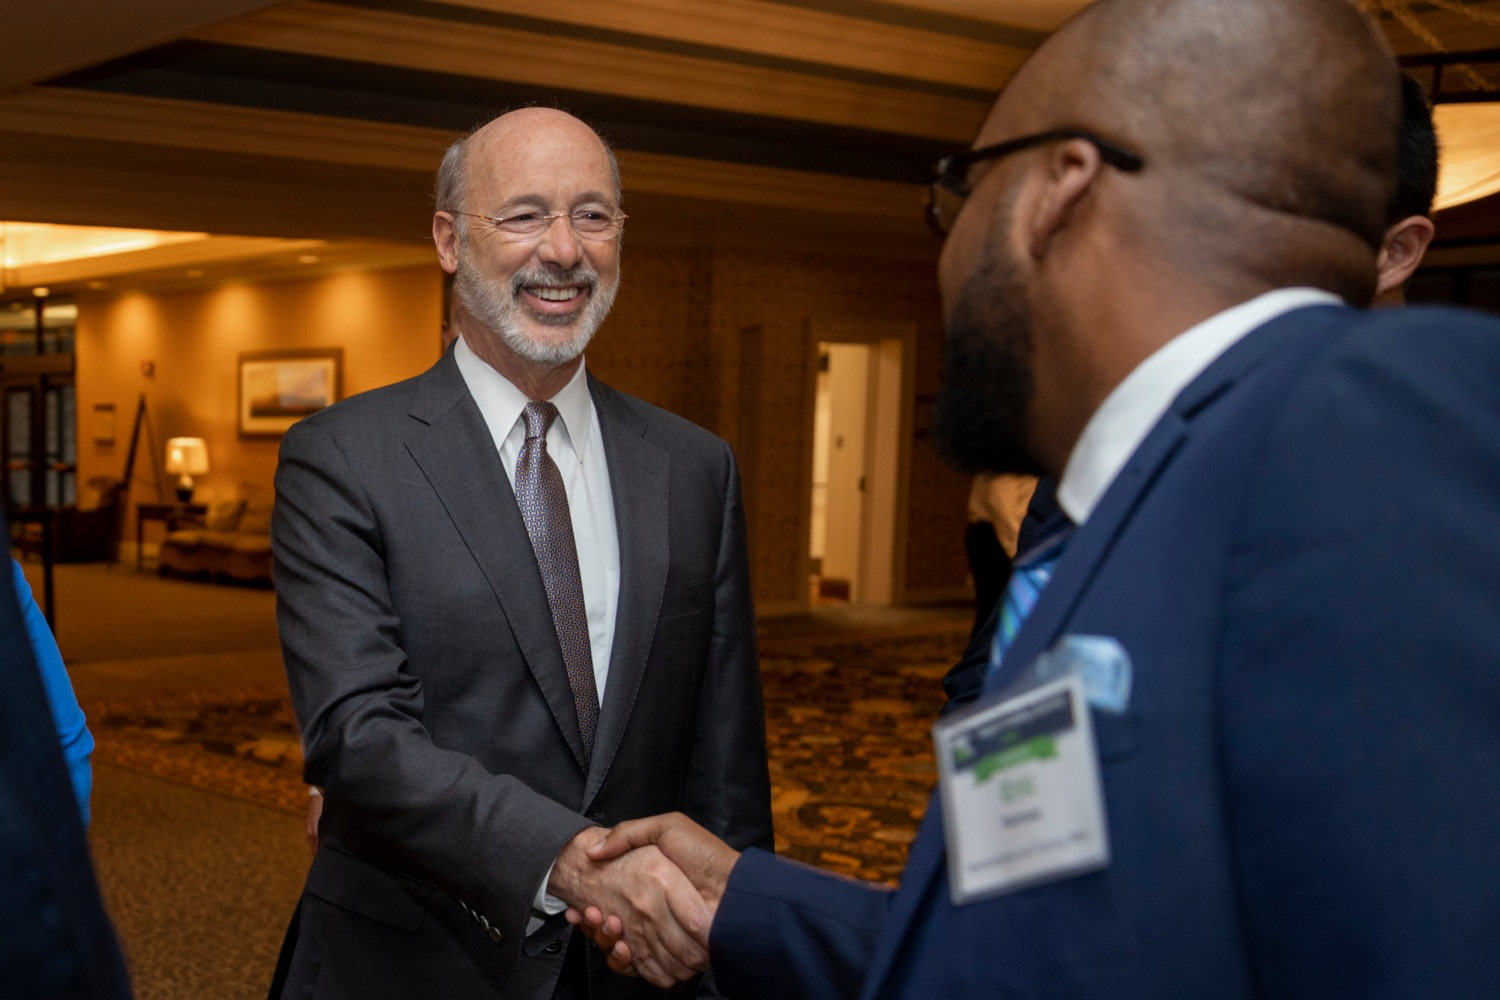 """<a href=""""http://filesource.abacast.com/commonwealthofpa/photo/17520_LandI_Apprenticeships_NK_003.JPG"""" target=""""_blank"""">⇣Download Photo<br></a>Pennsylvania Governor Tom Wolf shakes hands with Eric Ramsay, director of Apprenticeship and Training Office, during the 2019 Pennsylvania Apprenticeship Summit at Hershey Lodge on Thursday, October 31, 2019."""